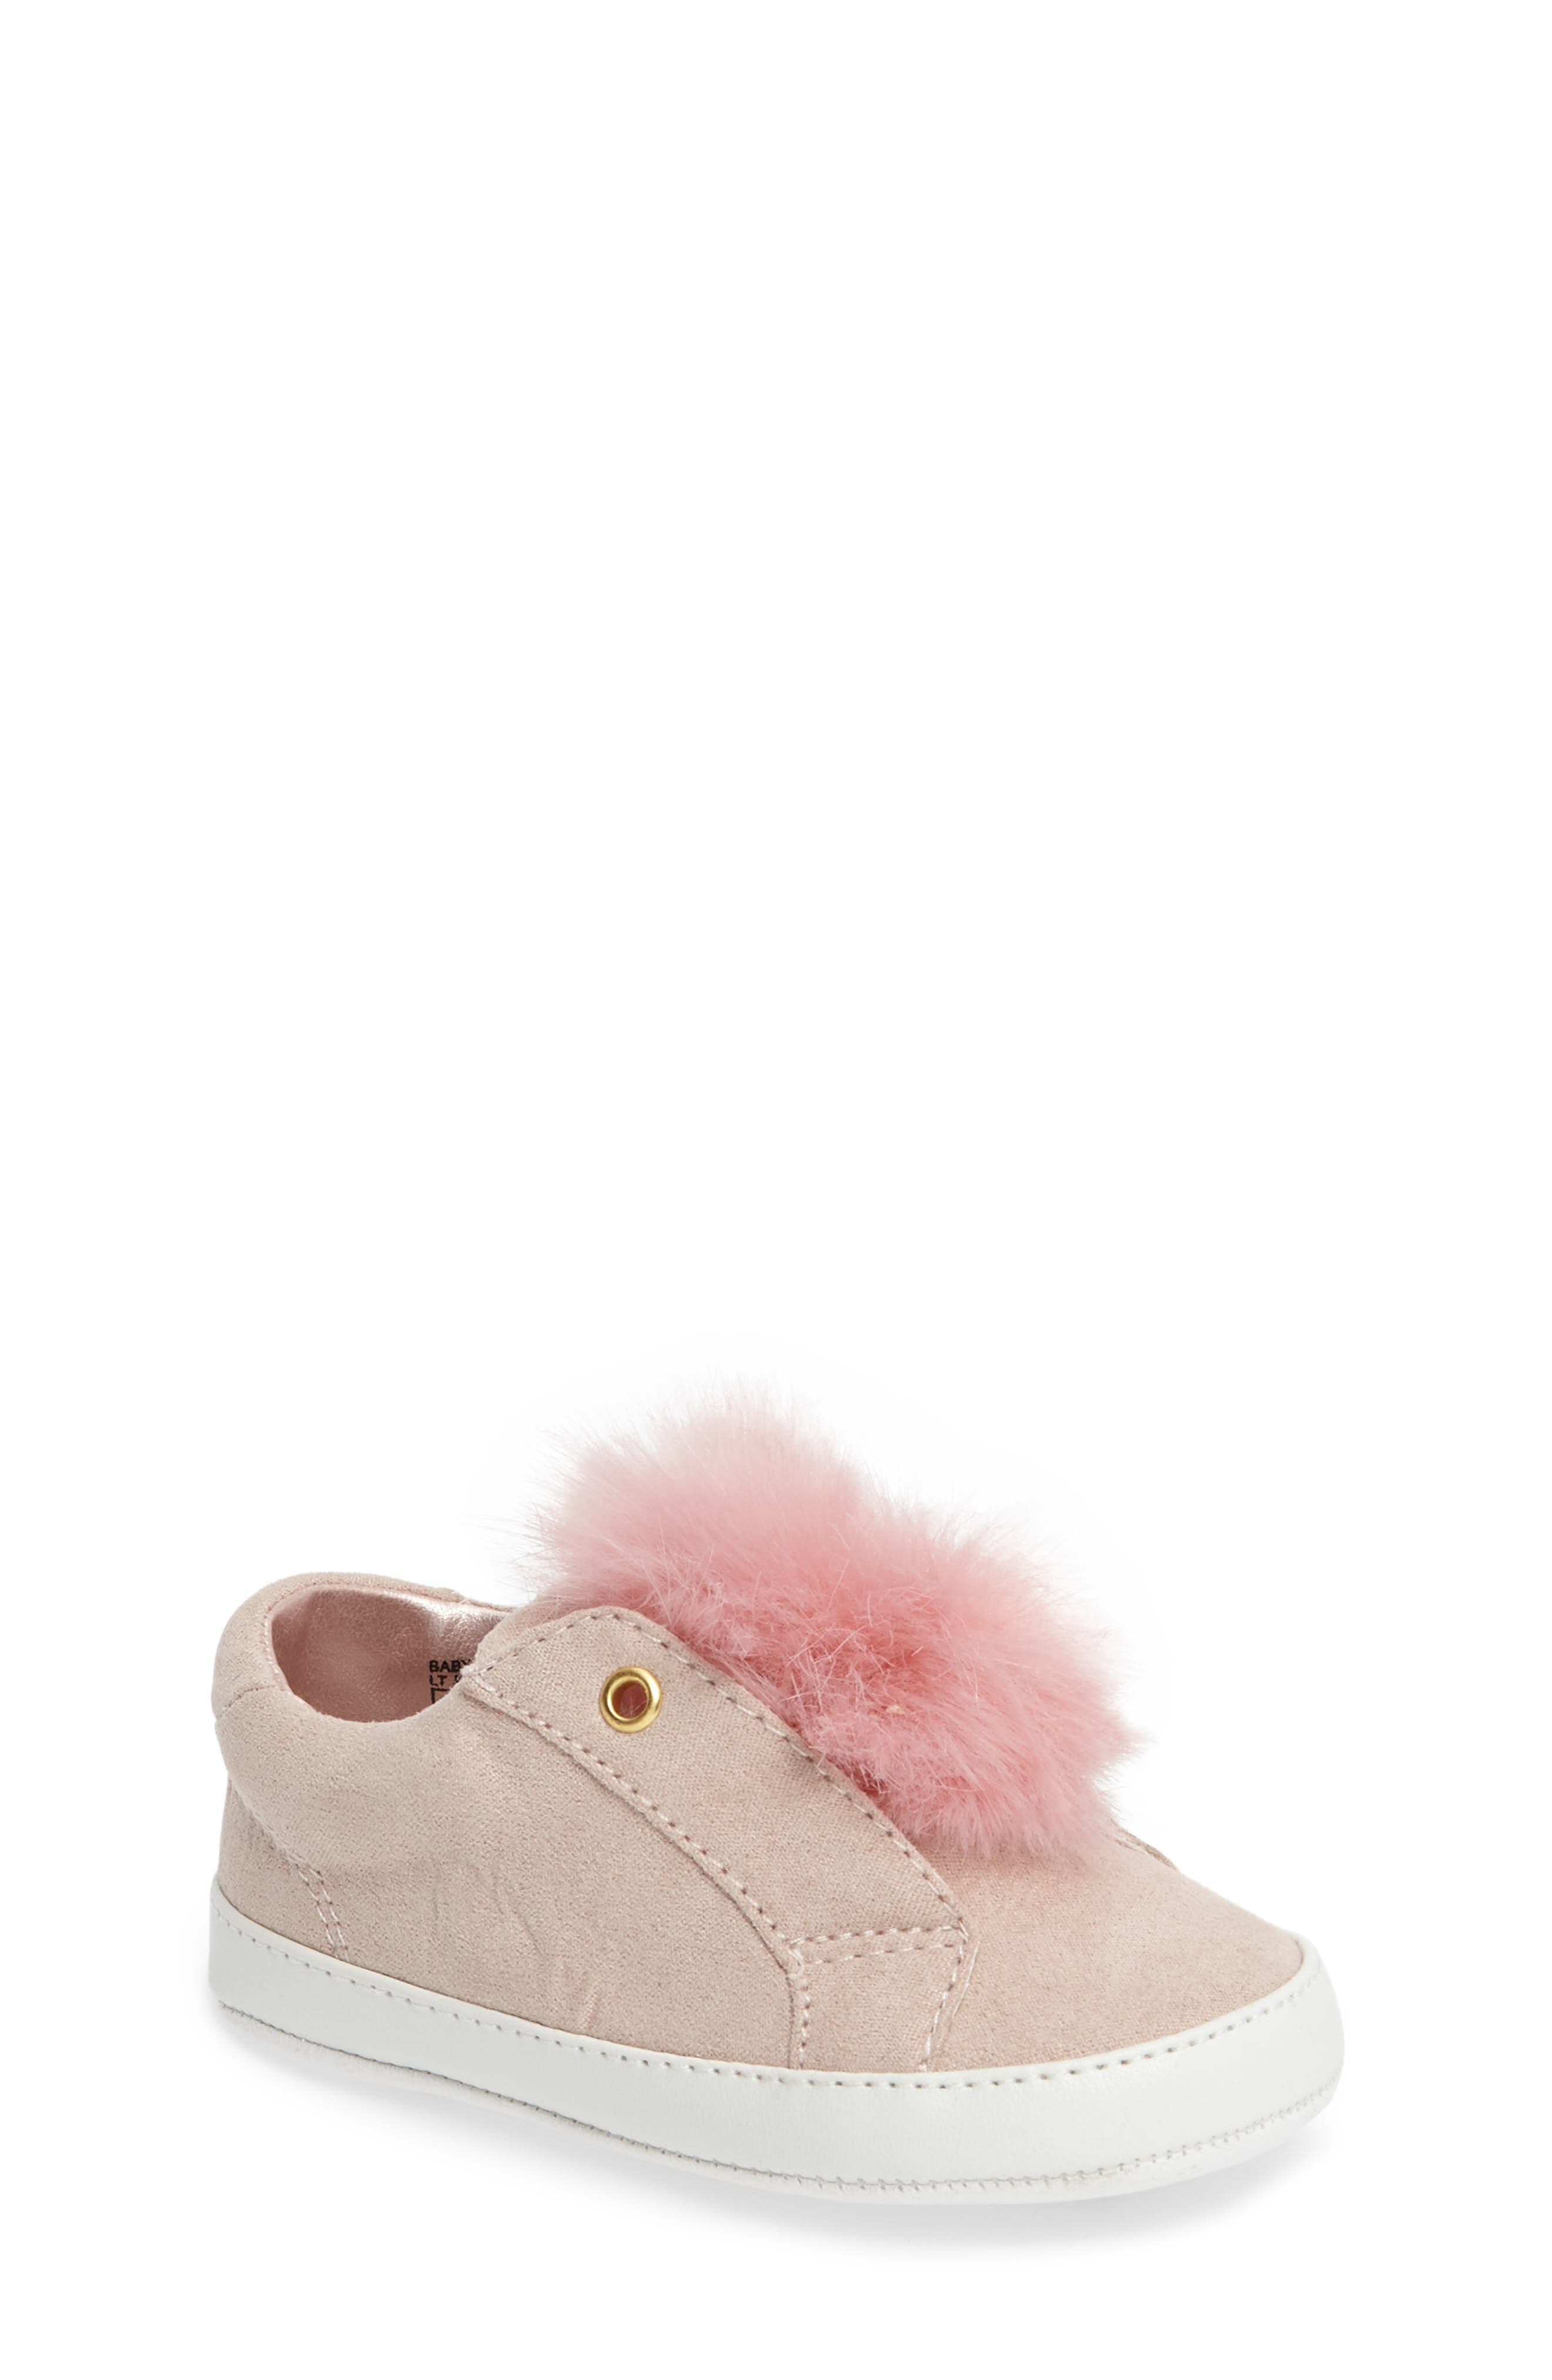 Leya Faux Fur Pompom Sneaker,                             Main thumbnail 1, color,                             Pink